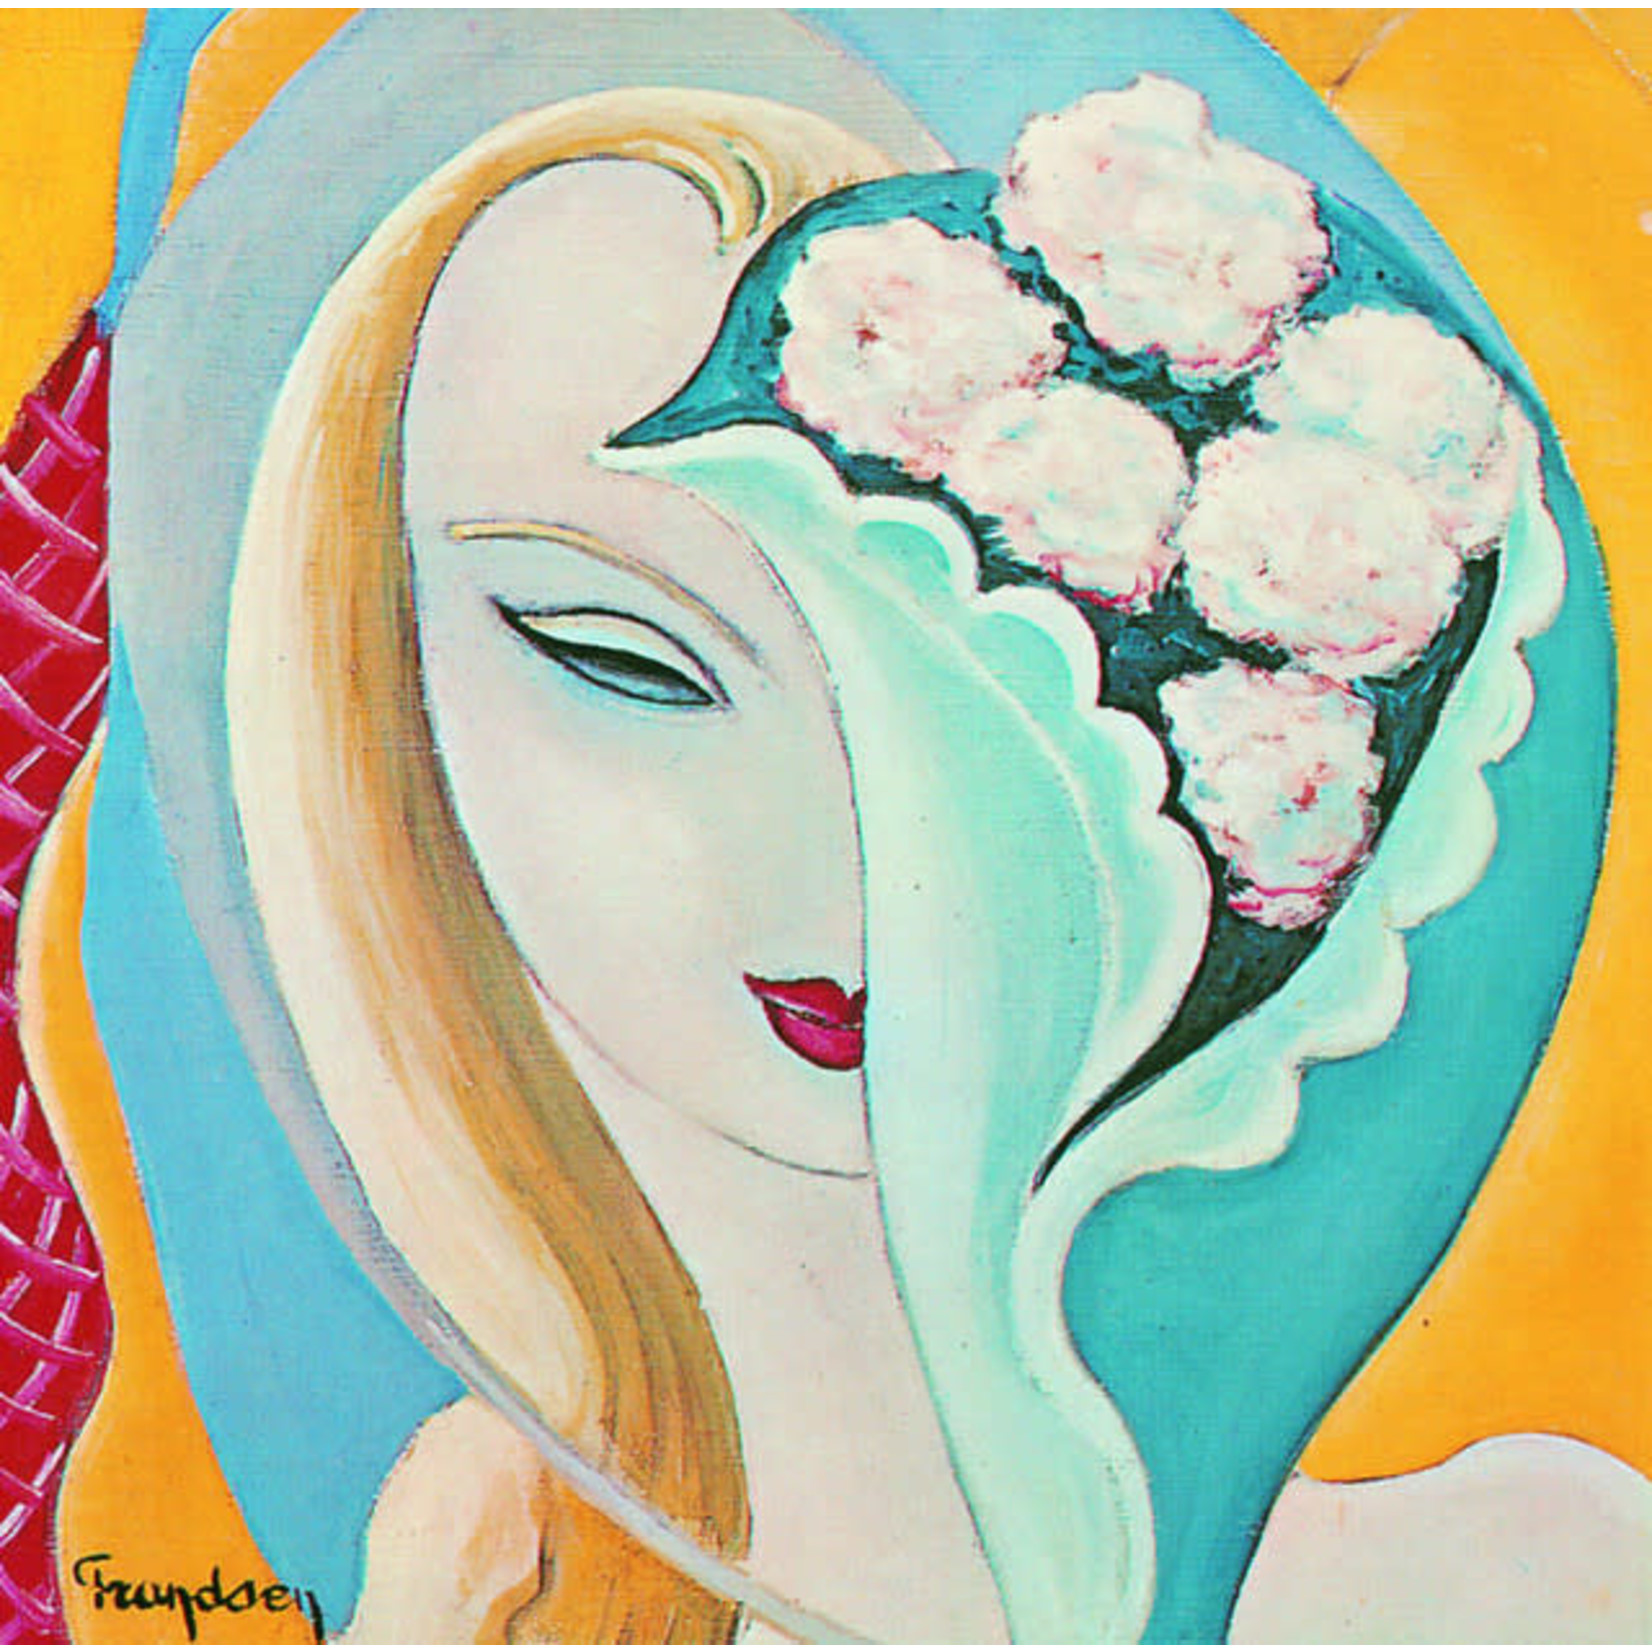 Vinyl Derek and The Dominos - Layla And Other Love Stories